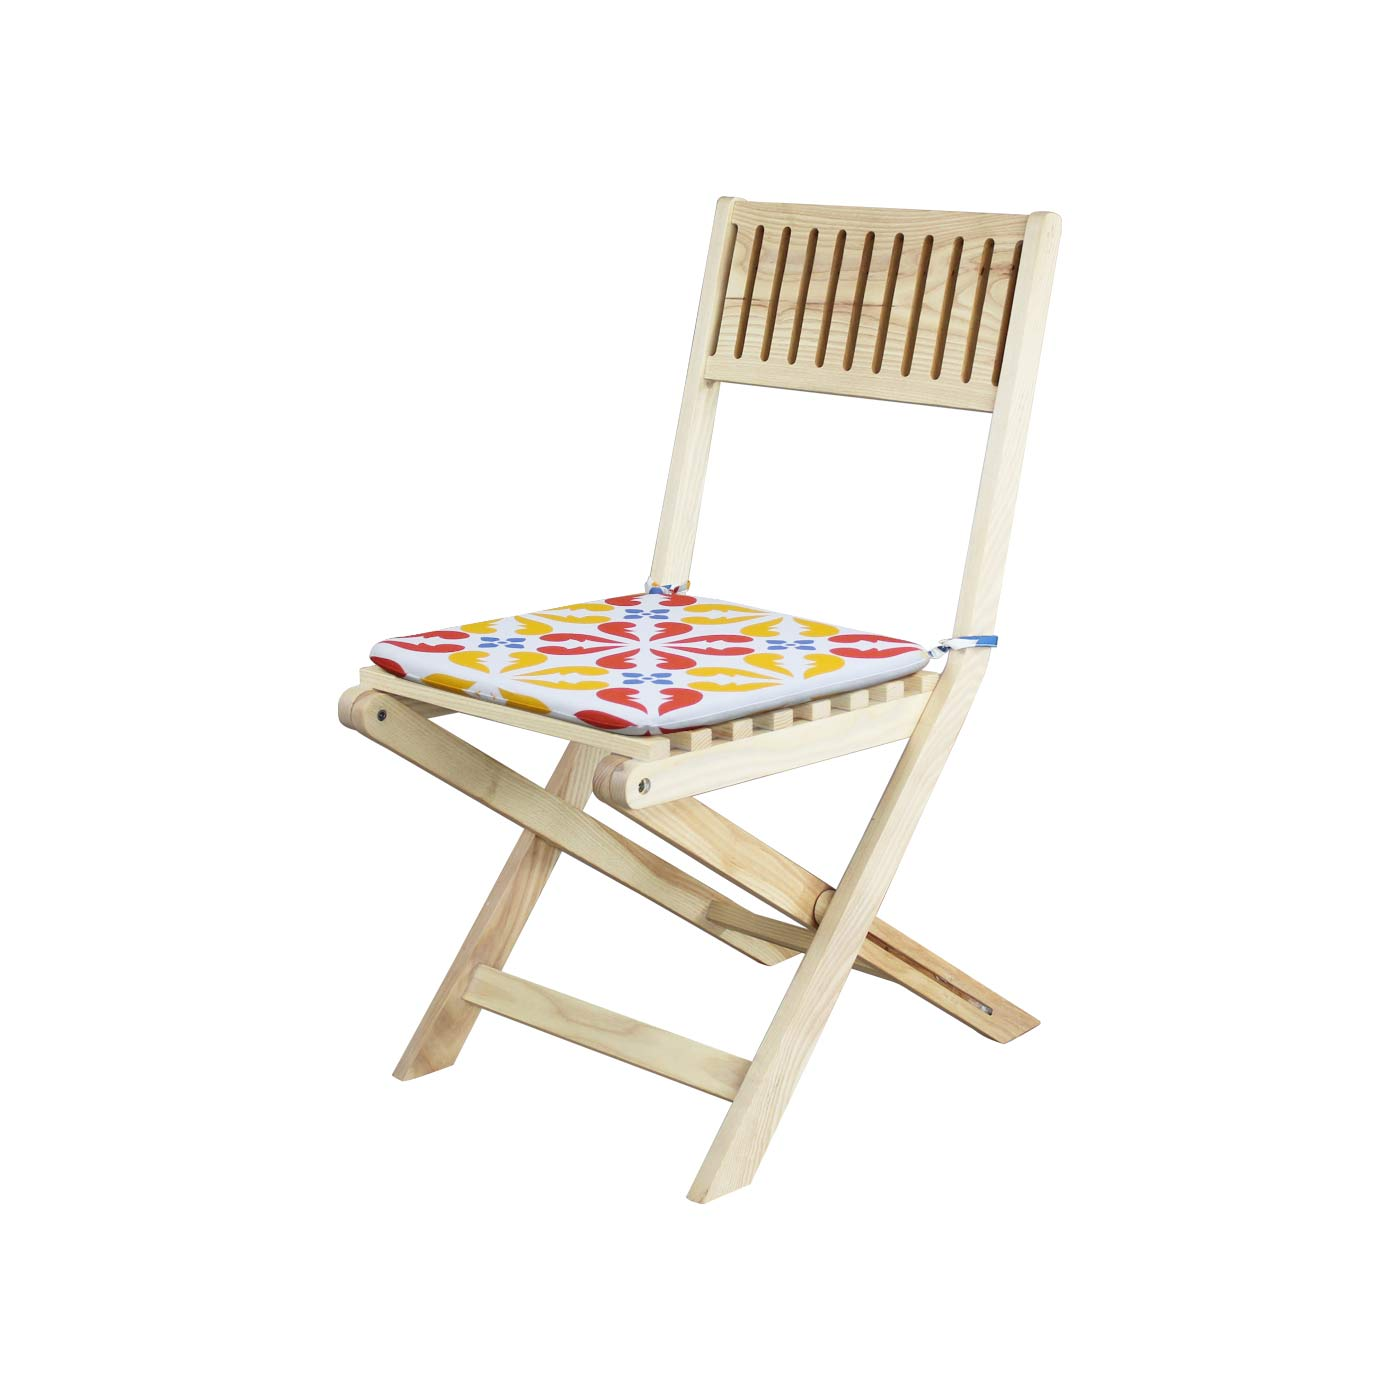 Palermo Yellow & Red Floral Patterned Light Folding Chair